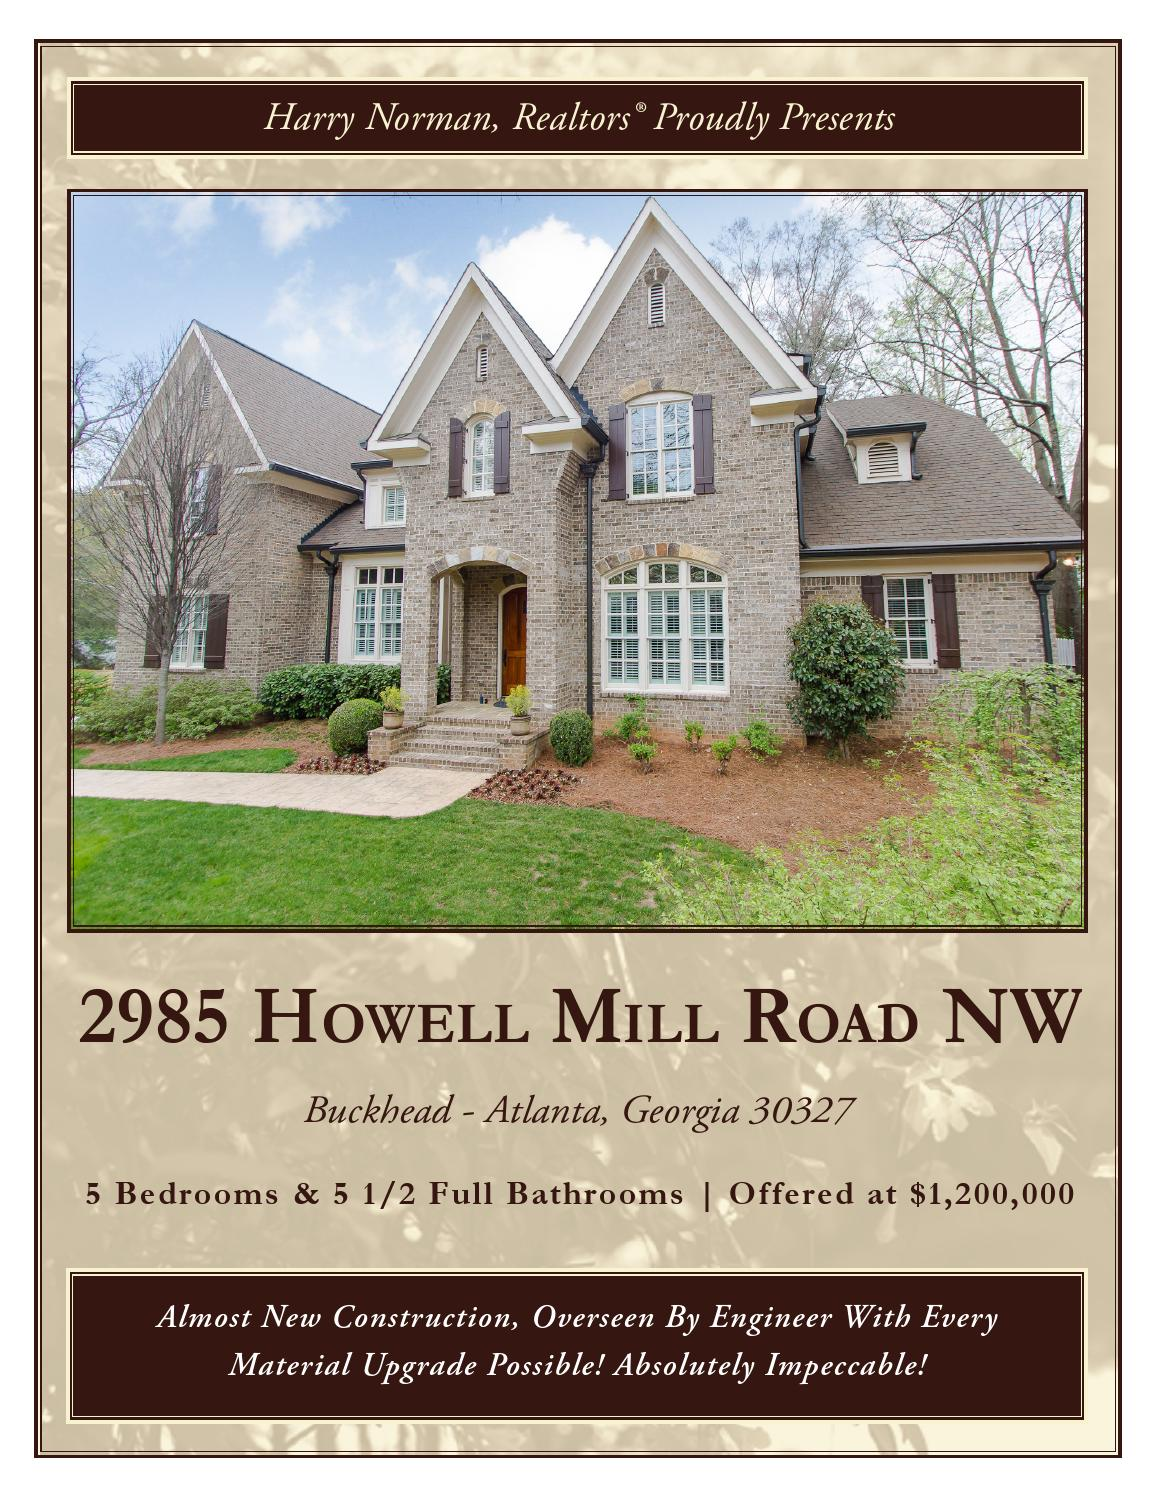 2985 Howell Mill Road By Harry Norman Buckhead Nw Office